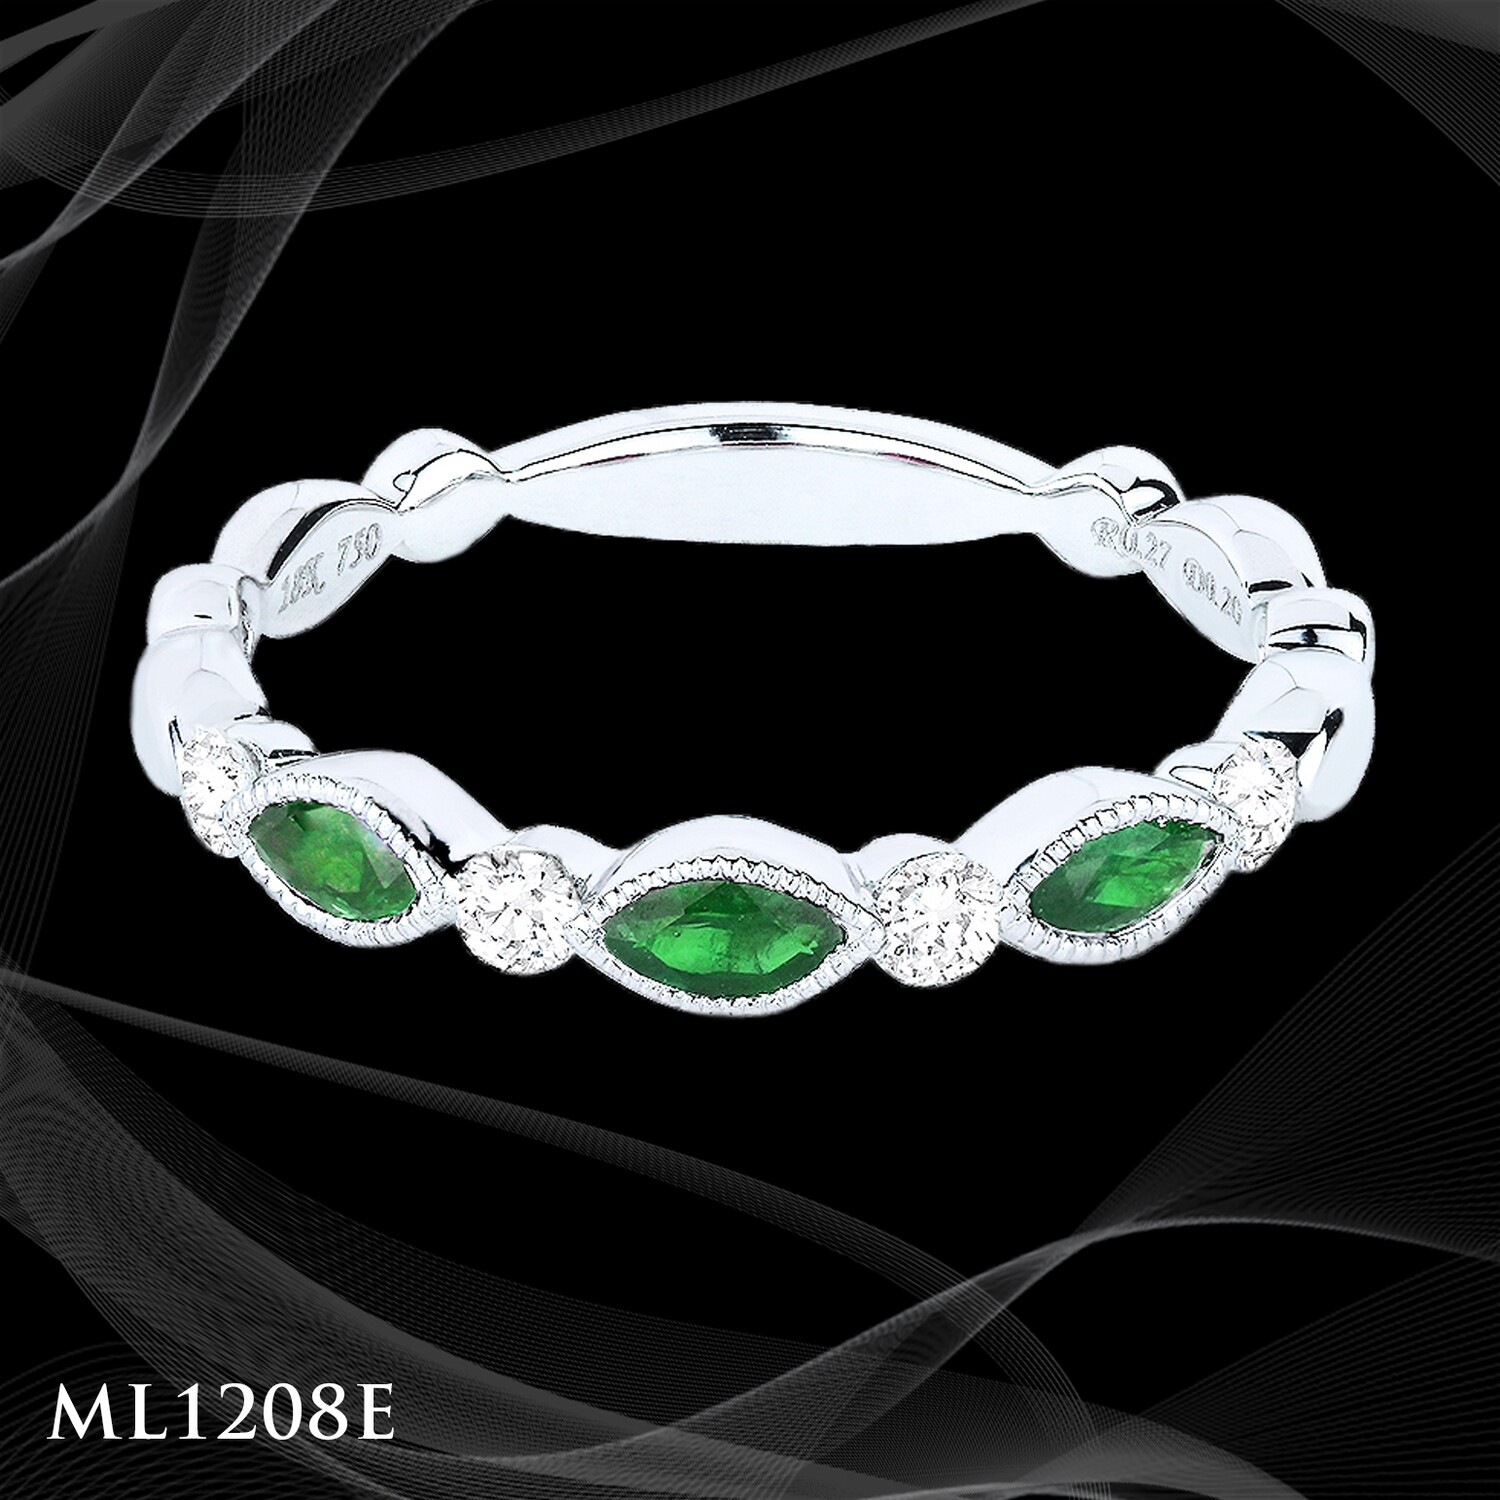 14 Karate white gold emerald and diamond ladies fashion ring.